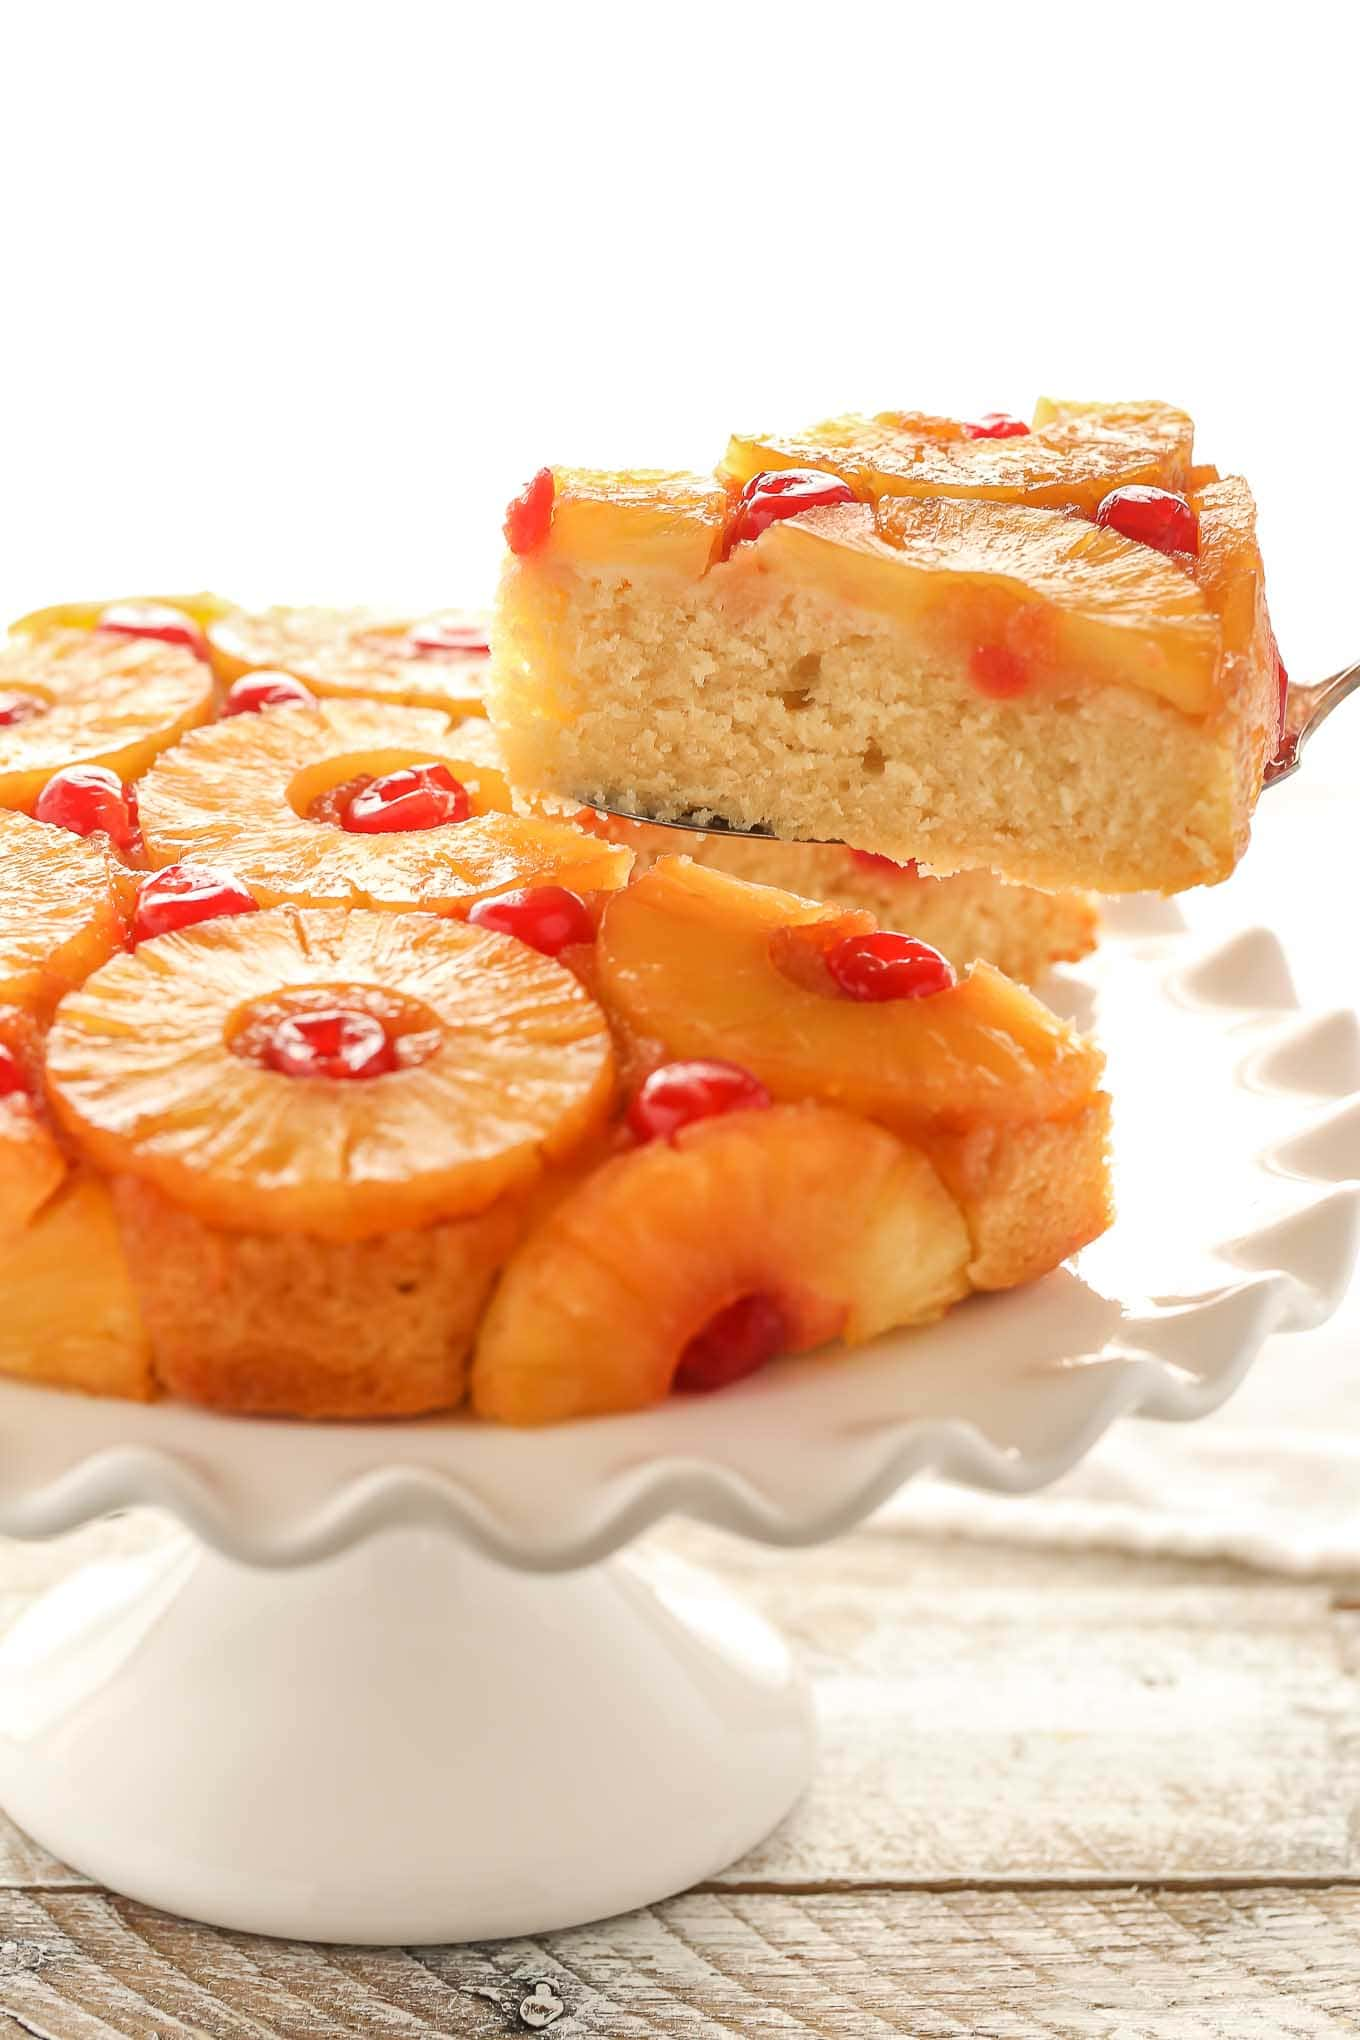 This homemade Pineapple Upside-Down Cake features a caramelized pineapple topping and an incredibly buttery, moist cake.